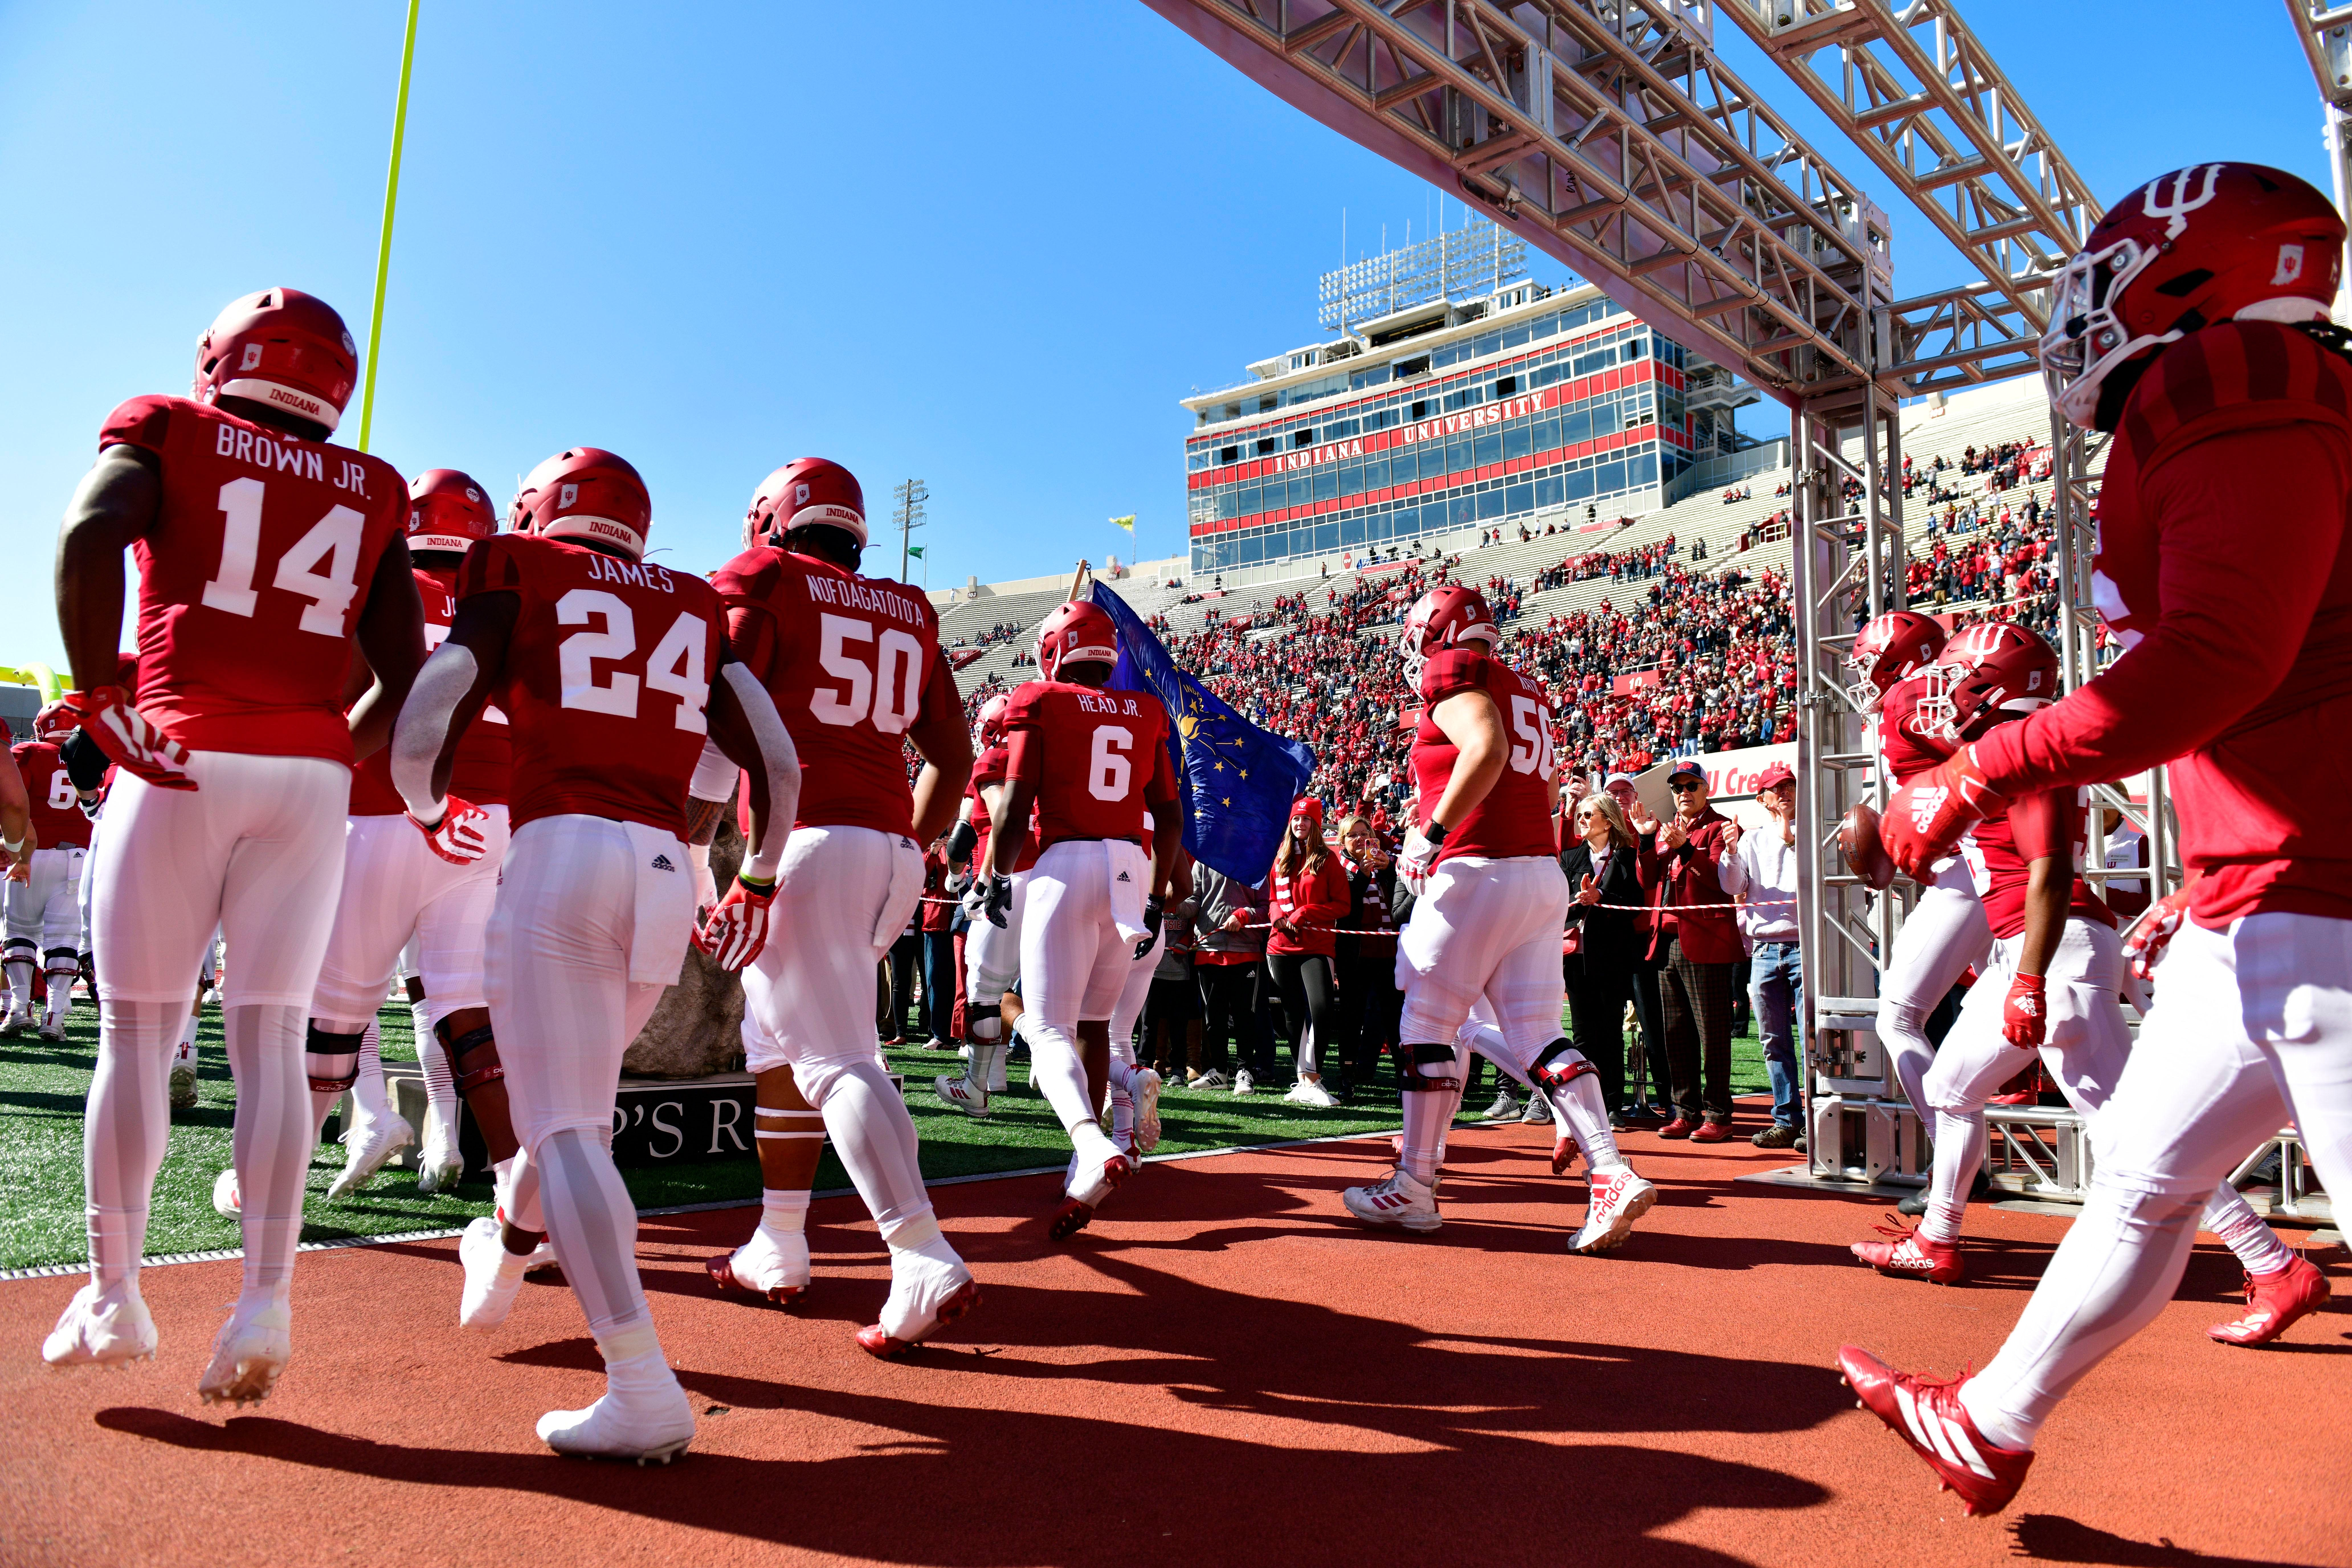 Mom s viral Facebook post about Indiana football player s COVID-19 issues serves as warning